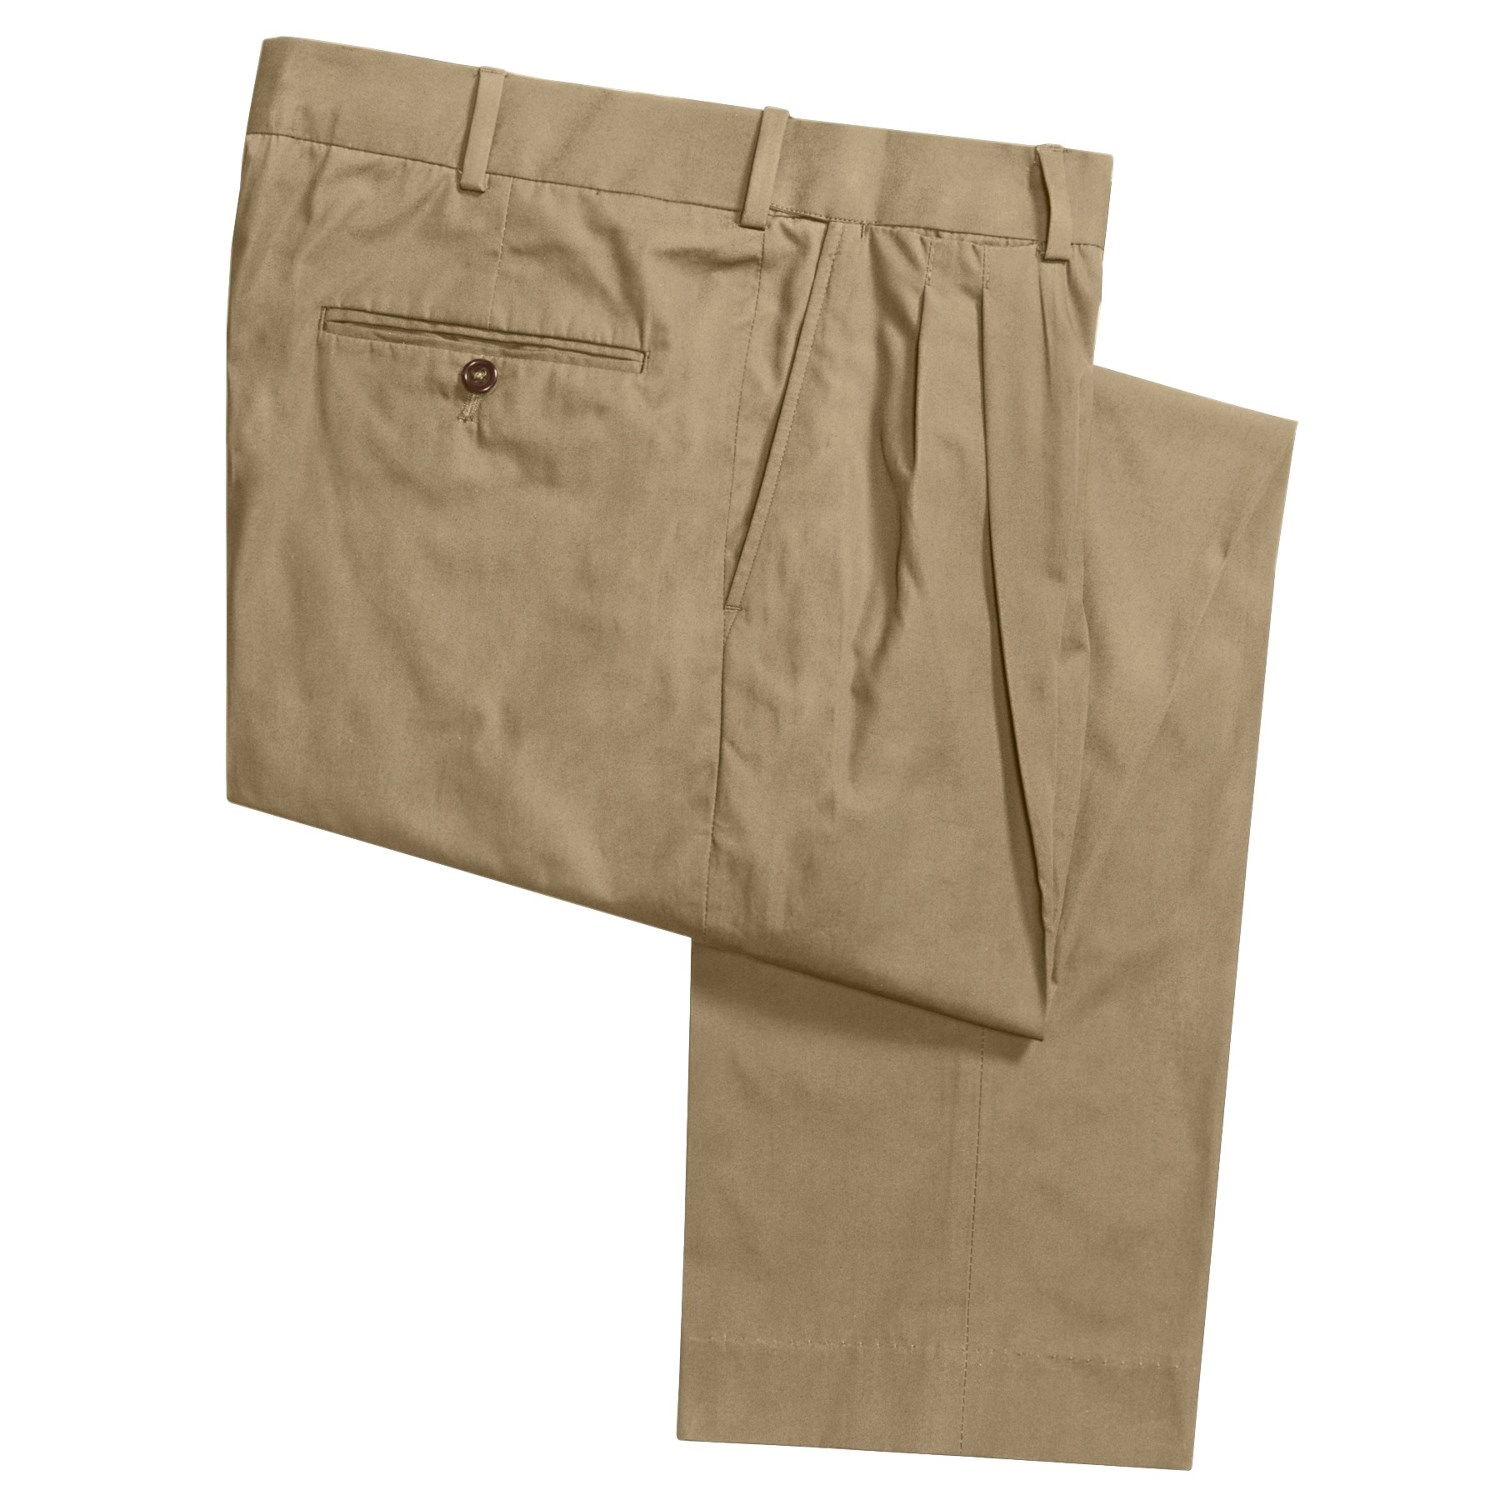 Using completely wrinkle-free 7-oz. midweight cotton poplin, our men's dress pants take advantage of the stretch provided by our specially designed comfort waist to keep you feeling at ease all day.